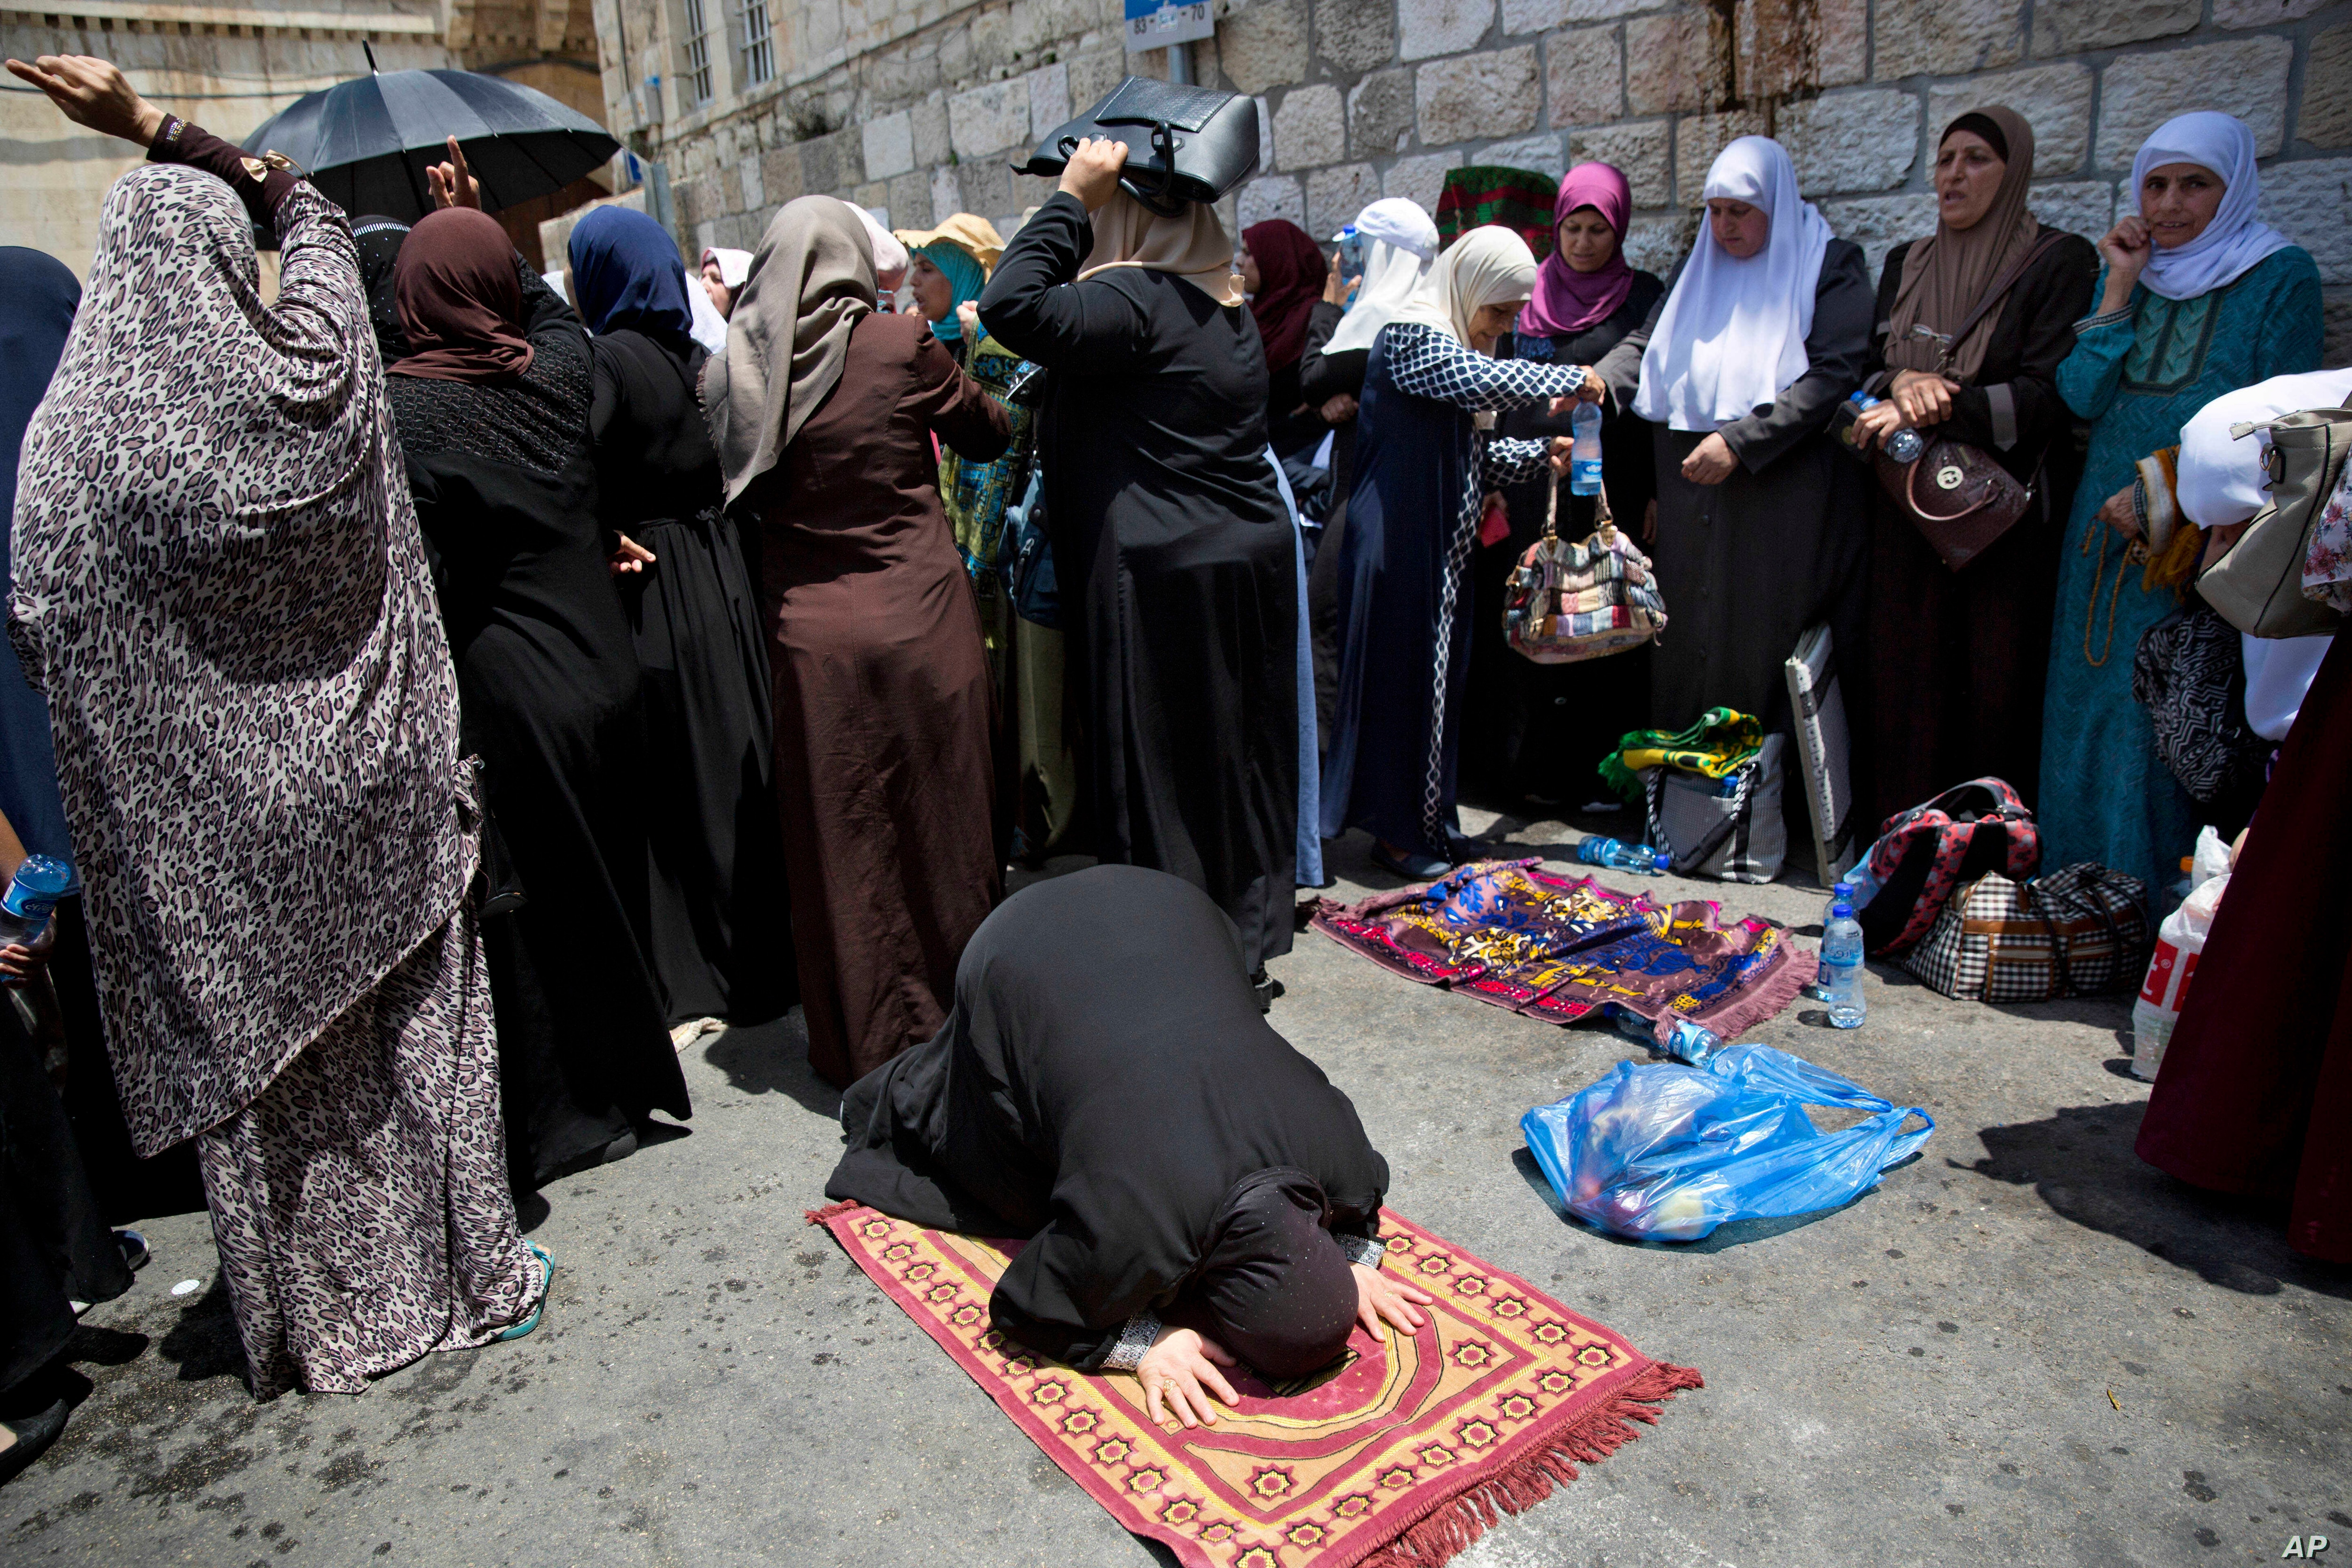 Palestinians women pray at the Lion's Gate following an appeal from clerics to pray in the streets instead of inside the Al Aqsa Mosque compound, in Jerusalem's Old City, Tuesday, July 25, 2017.